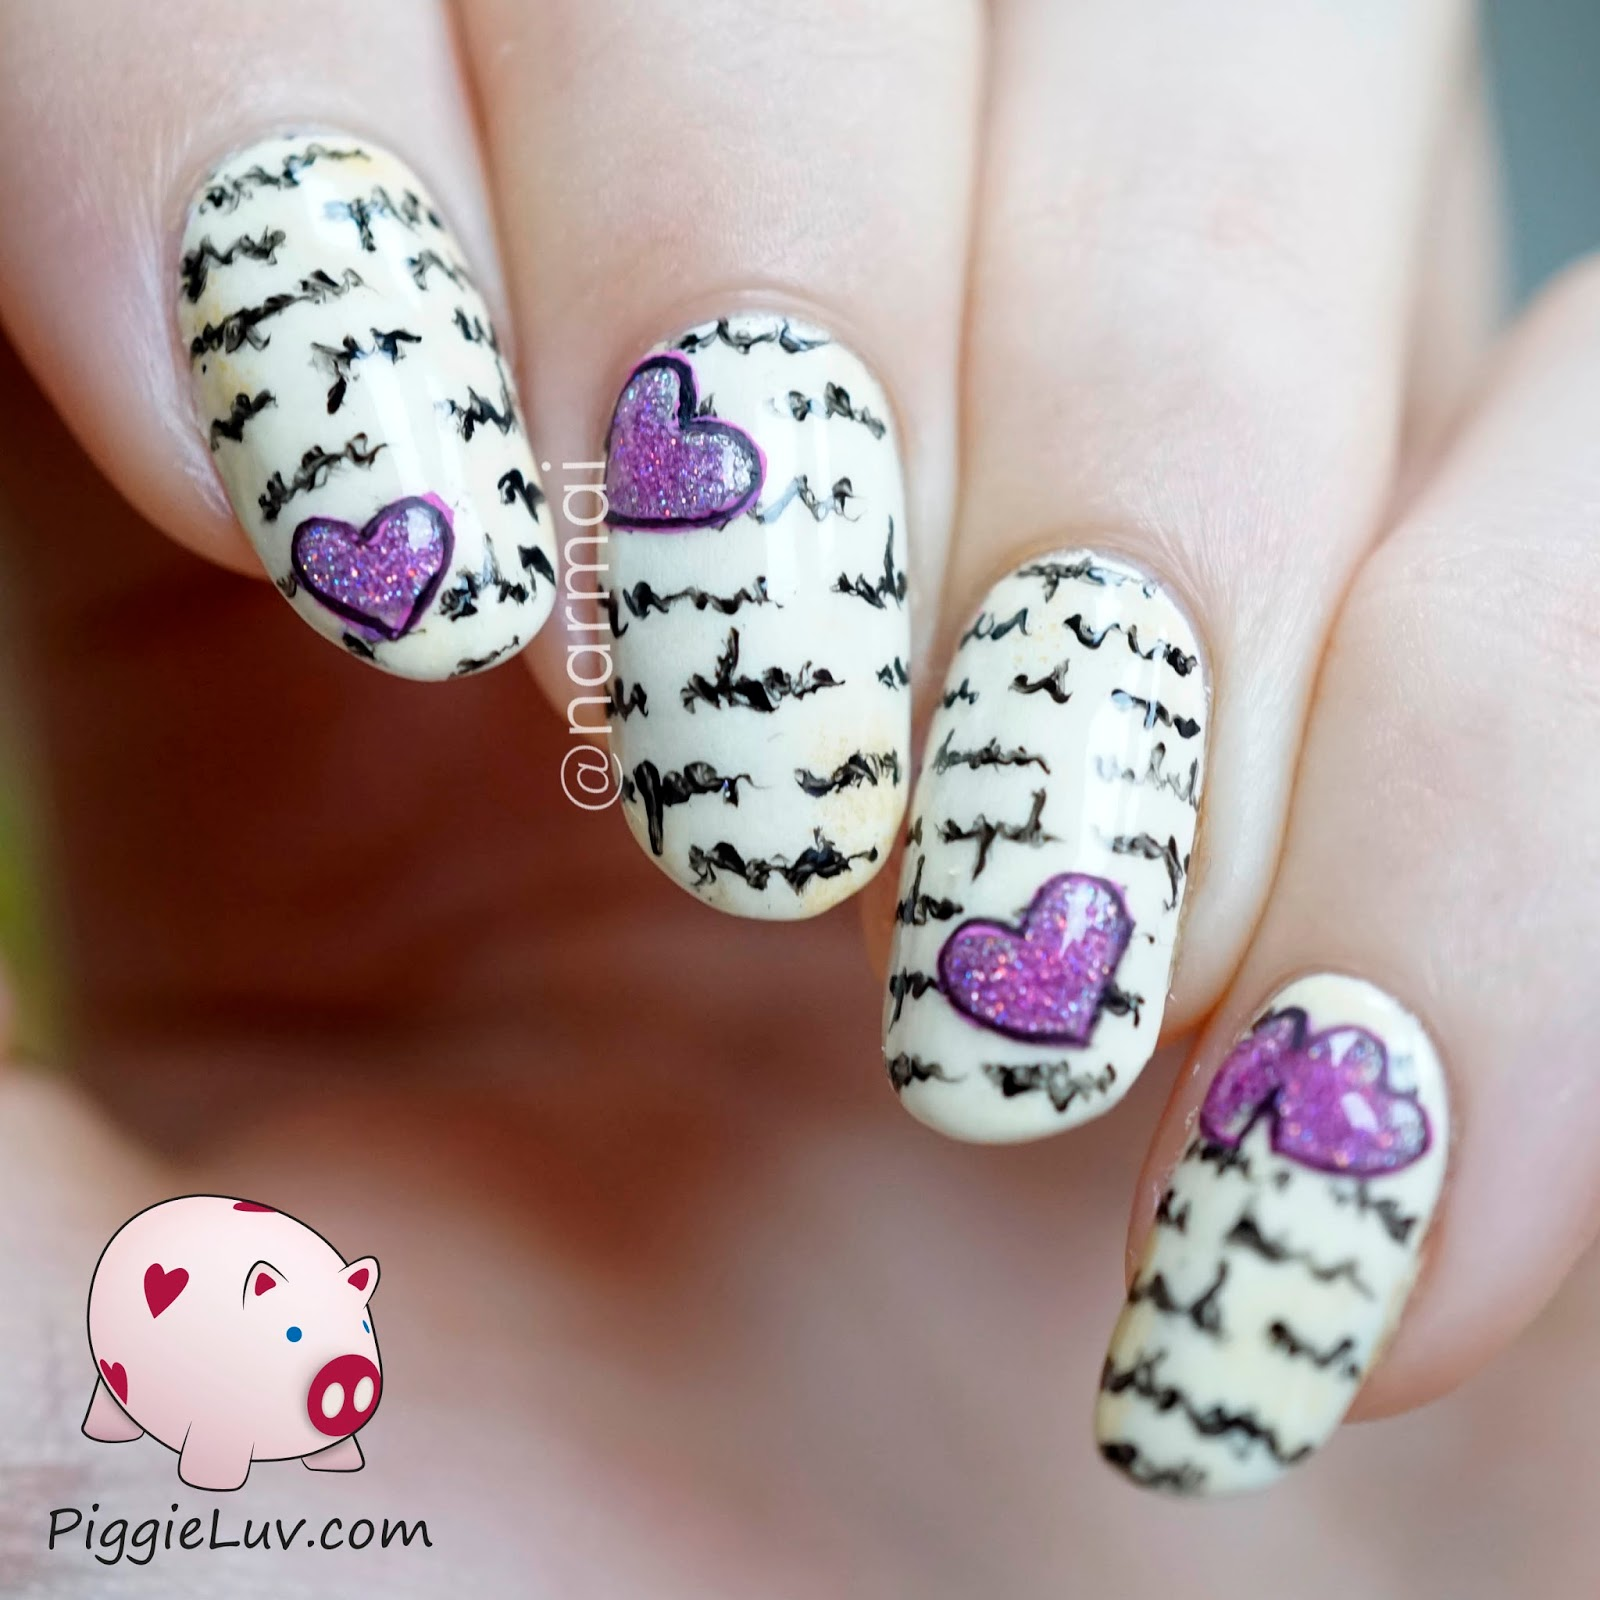 Nail art designs with letters letter nail designs art and glitter view images love letter nail art hpb valentine prinsesfo Images